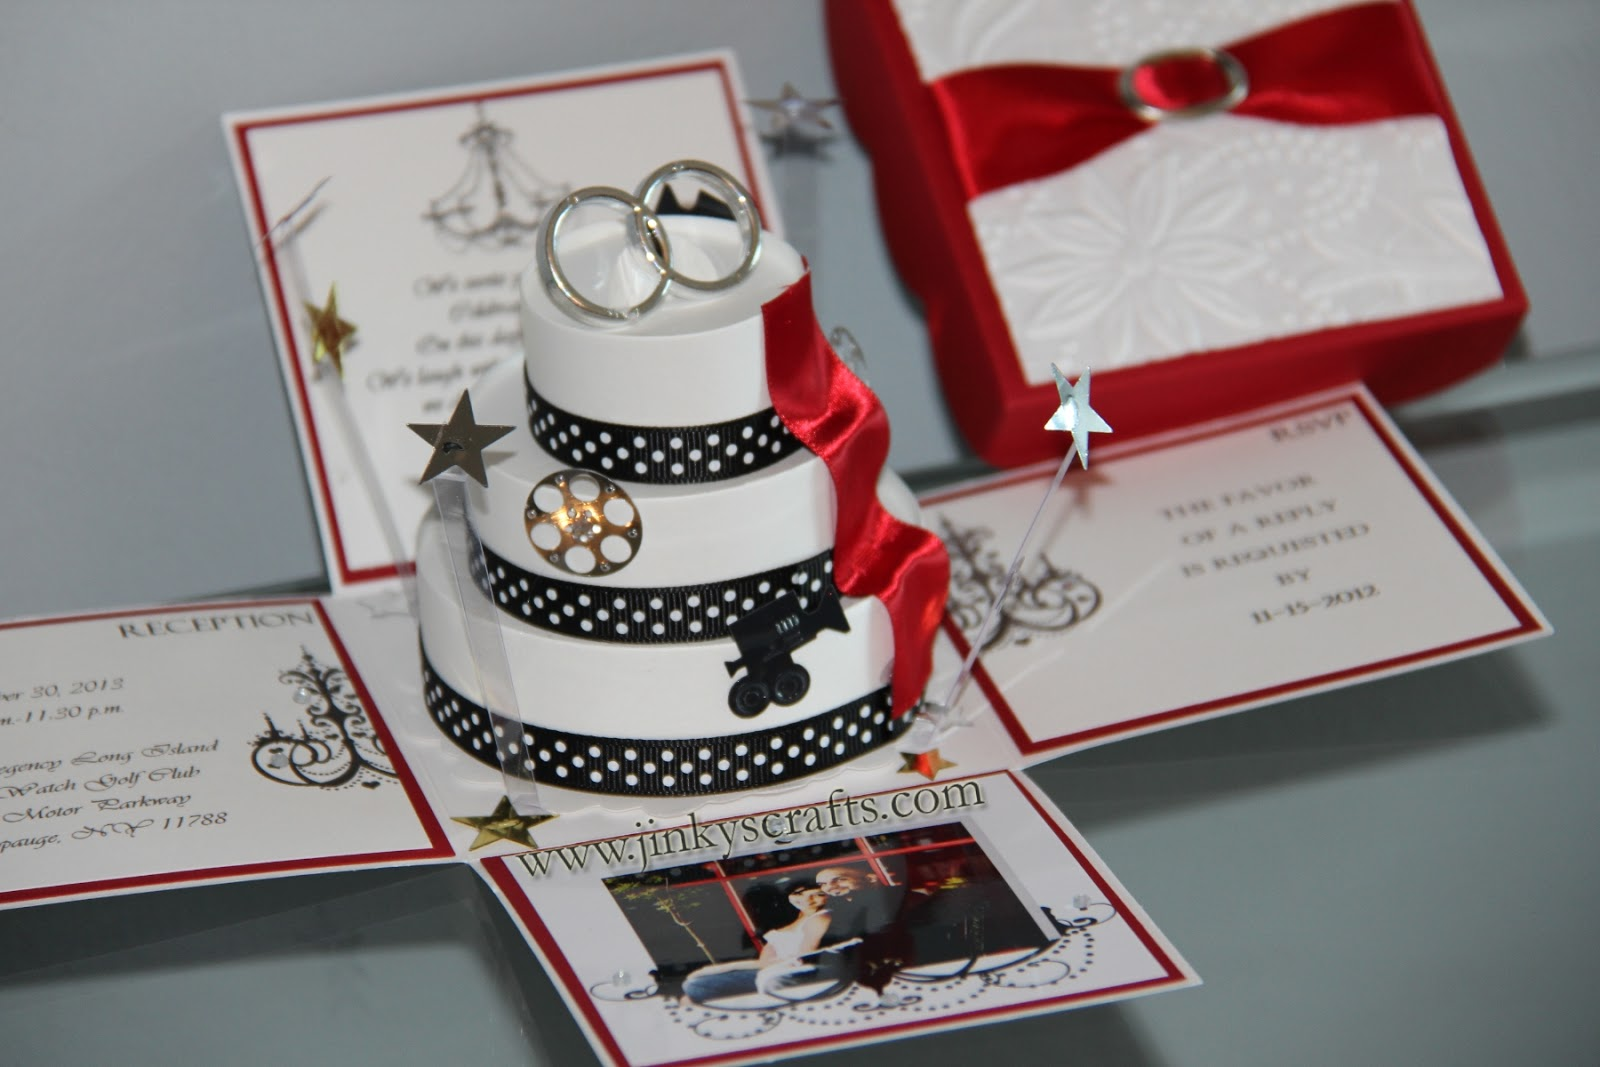 Wedding Invitation Picture Ideas: Jinky's Crafts & Designs: Hollywood Themed Wedding Invitations